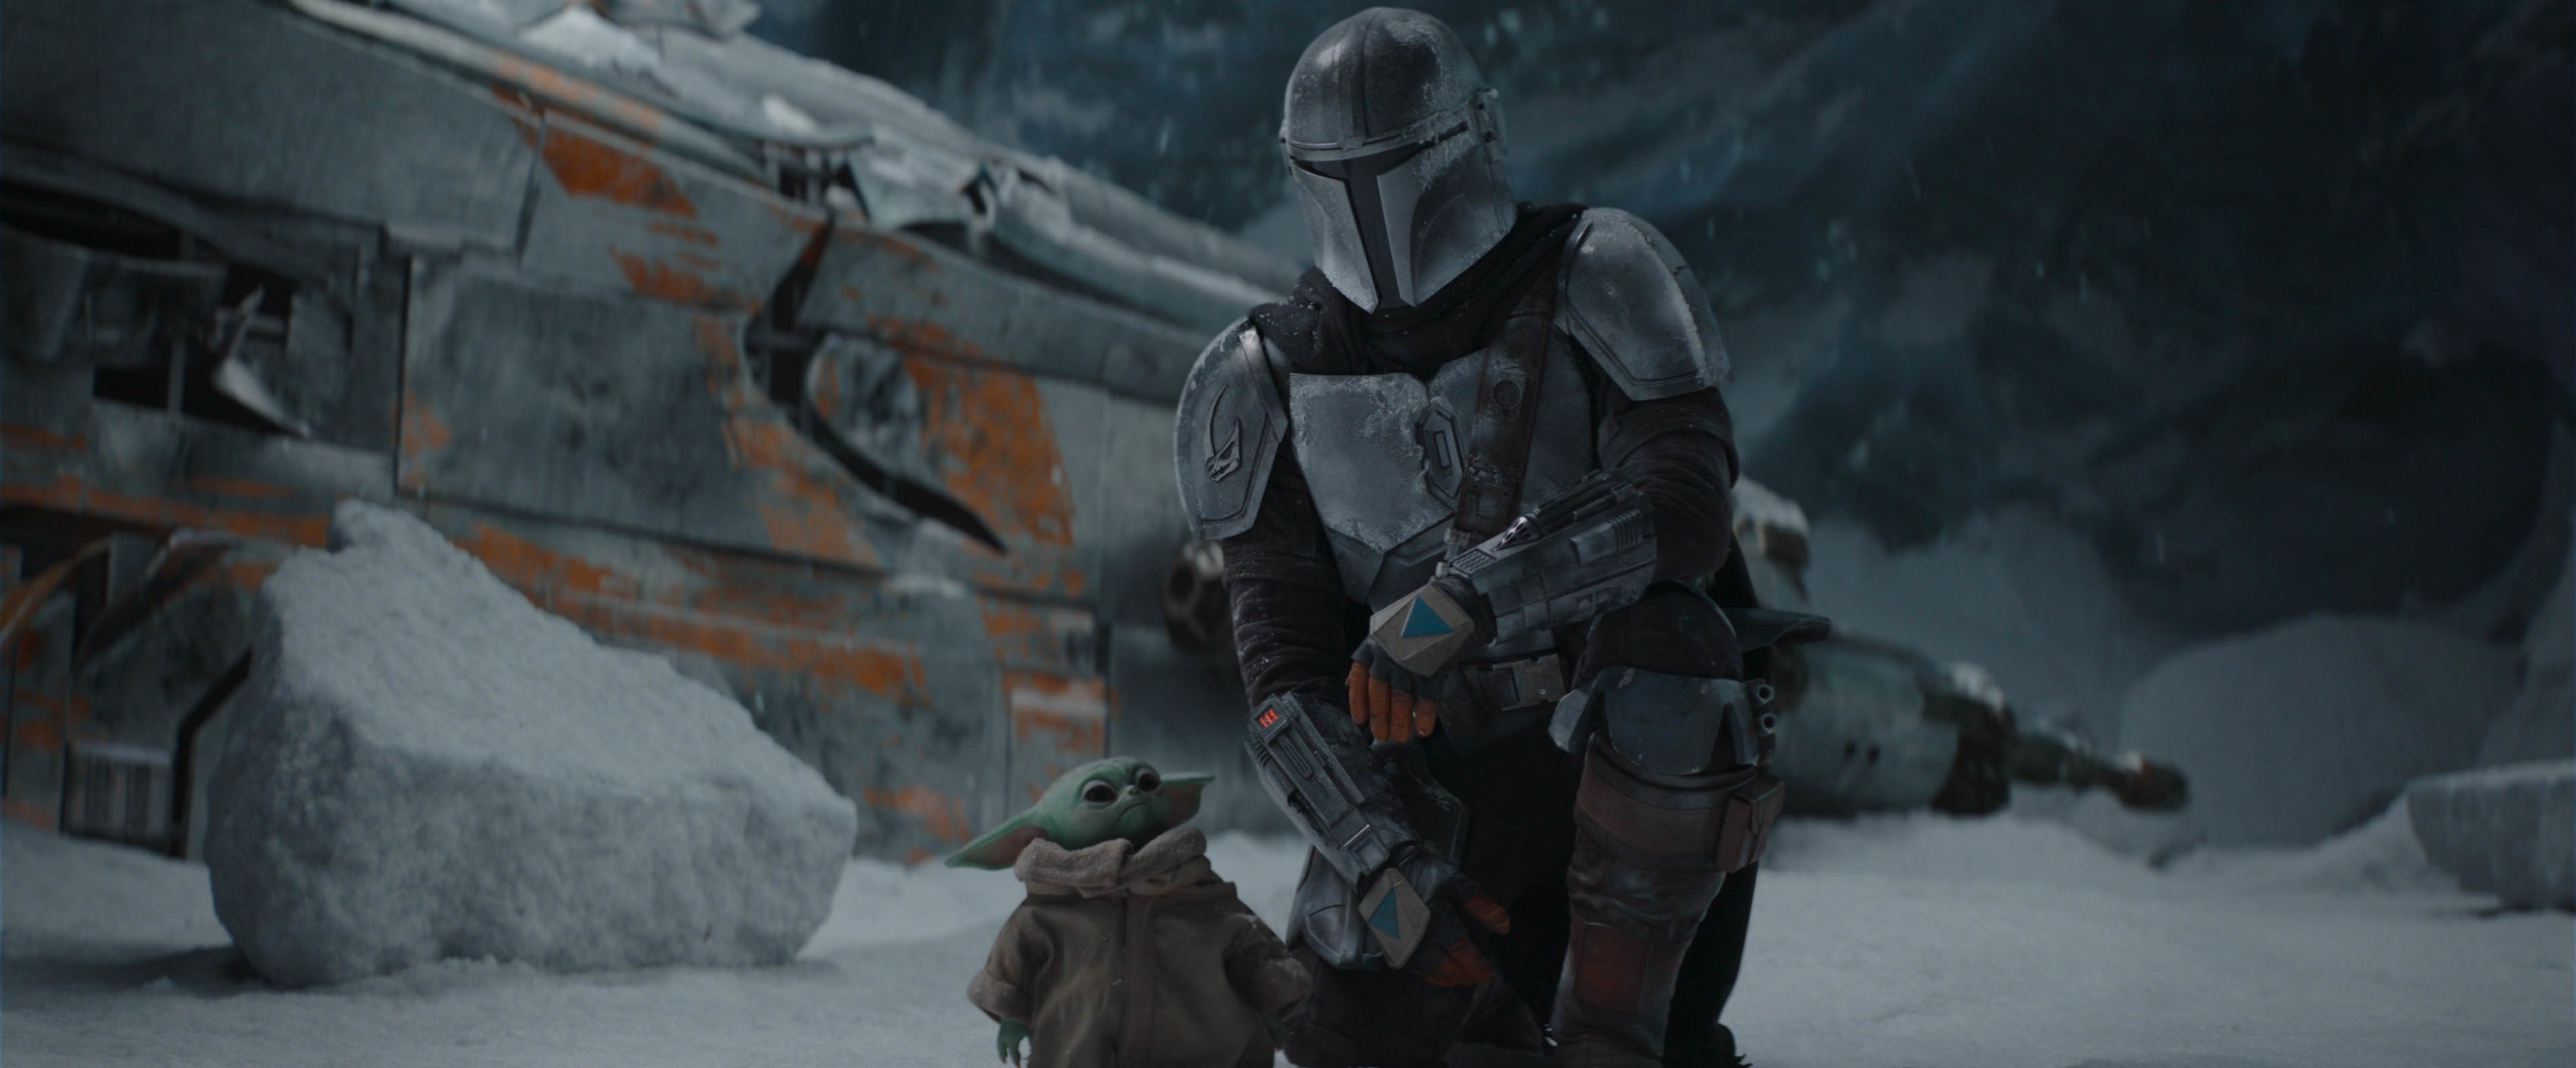 THE MANDALORIAN, from left: The Child (aka Baby Yoda), Pedro Pascal (as The Mandalorian)